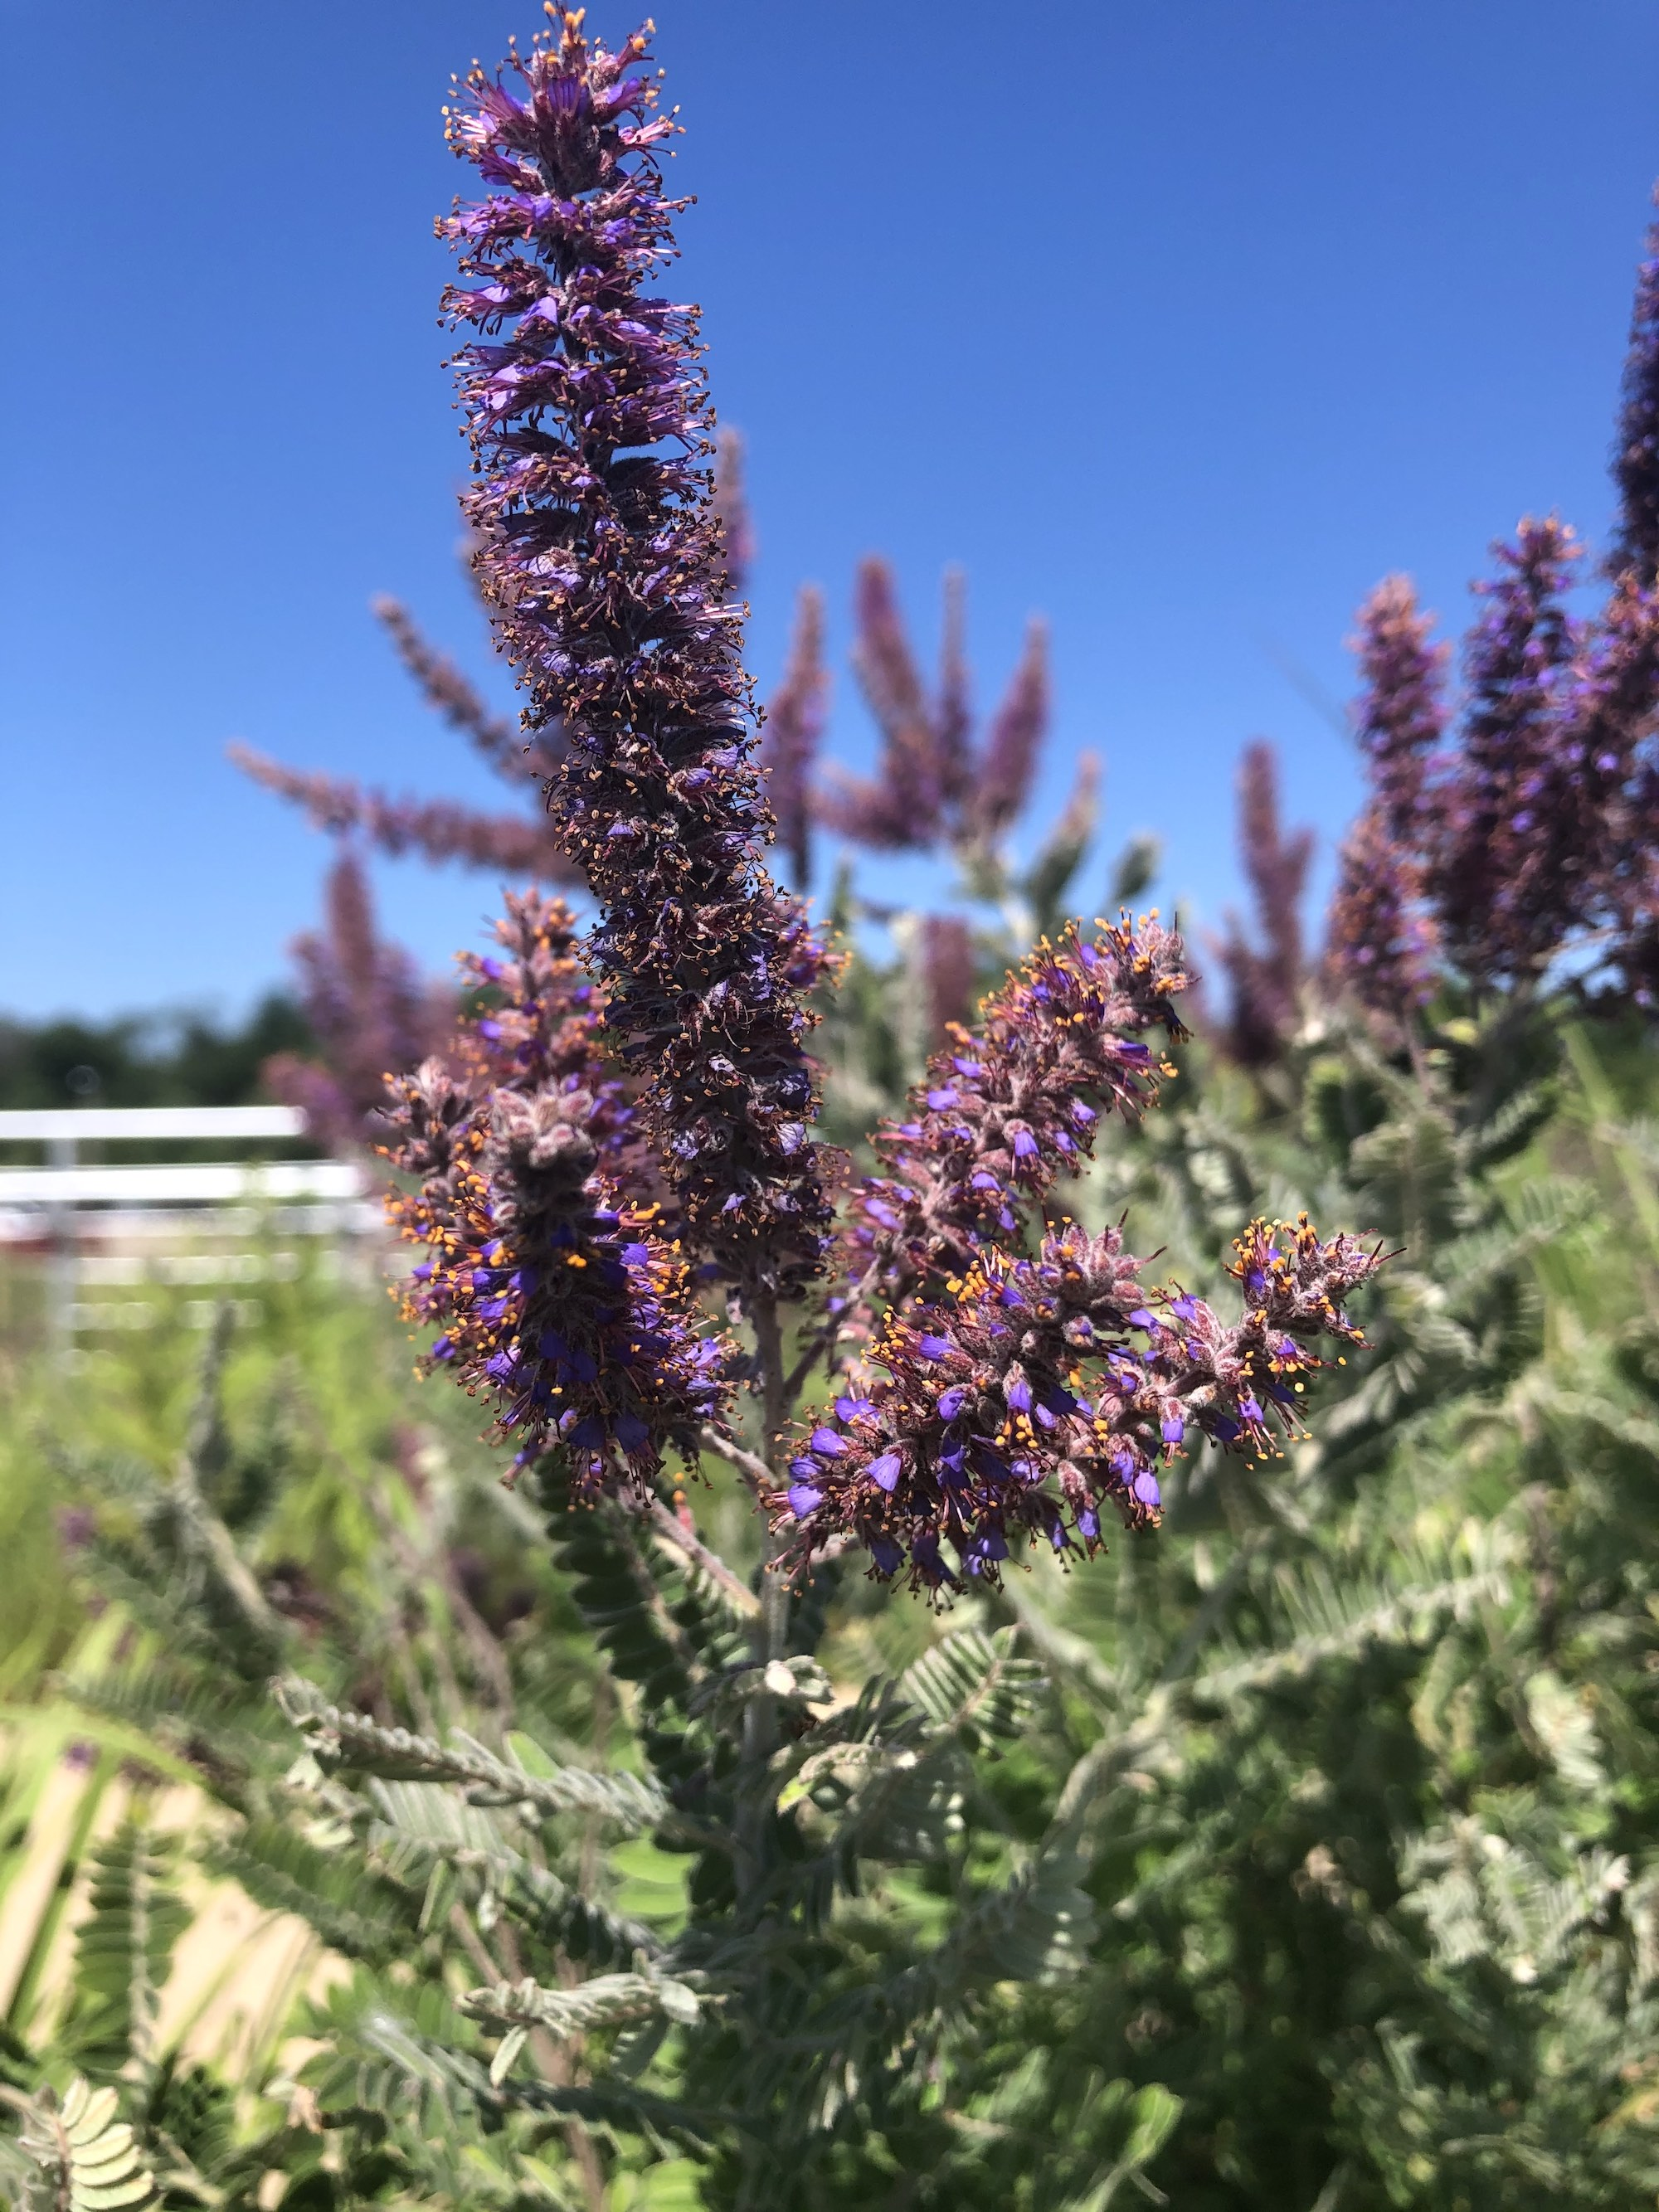 Leadplant next to the UW Arboretum Visitors Center parking lot on July 4, 2020.